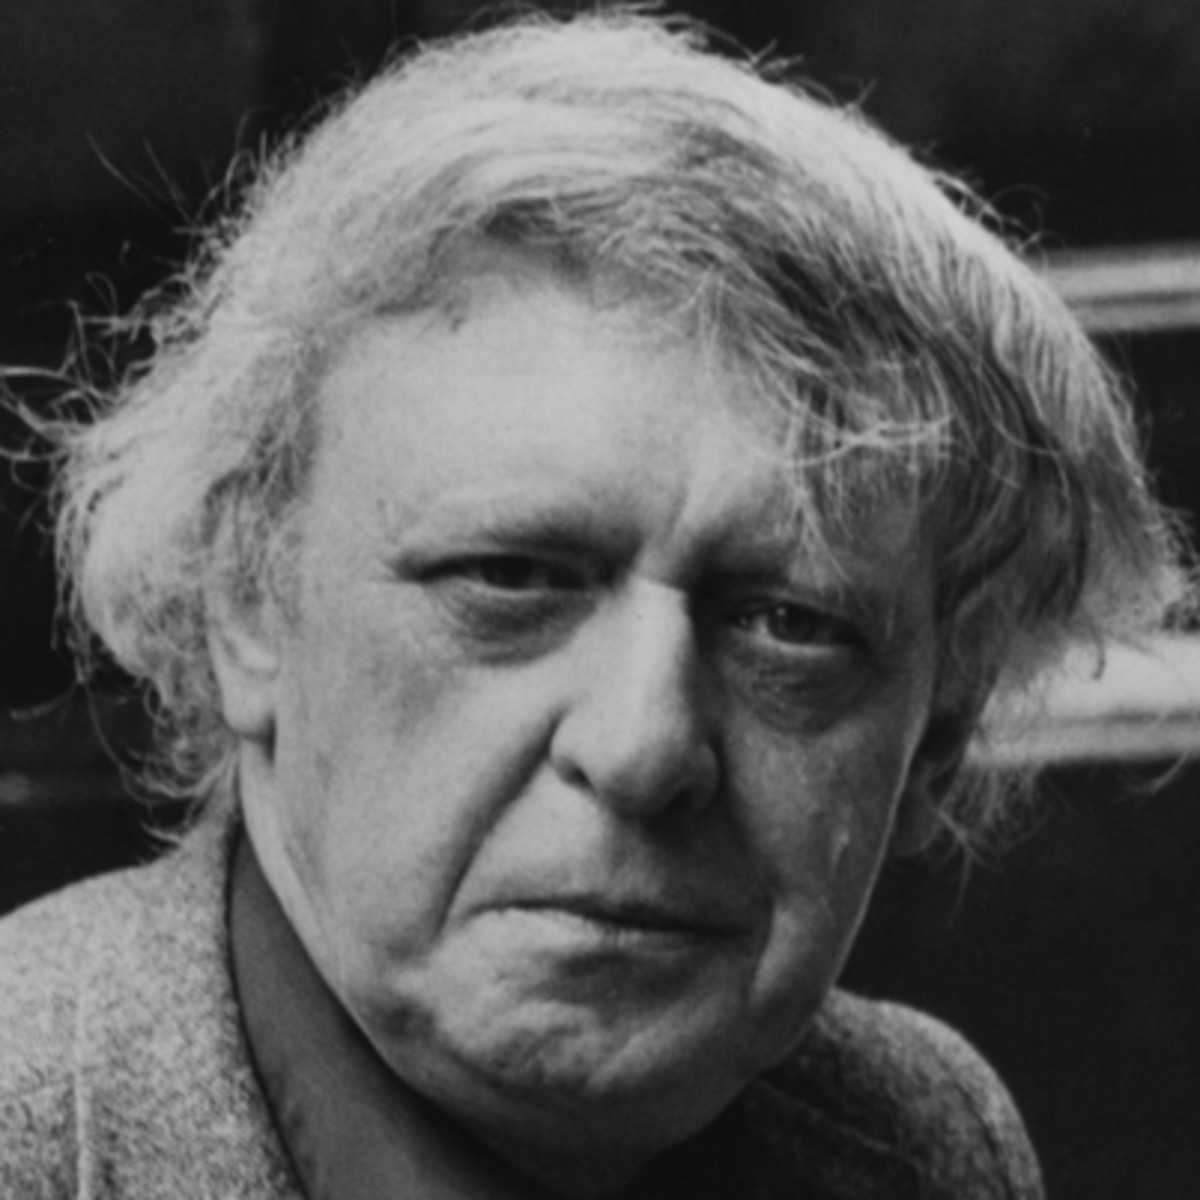 a biography of the author anthony burgess Anthony burgess has always attracted acclaim and notoriety in roughly equal measure he is admired for his literary novels, but known to a wider audience as the author of the ultra-violent shocker, a clockwork orange burgess was a brilliant polymath, a composer, and a man for whom chaos and.